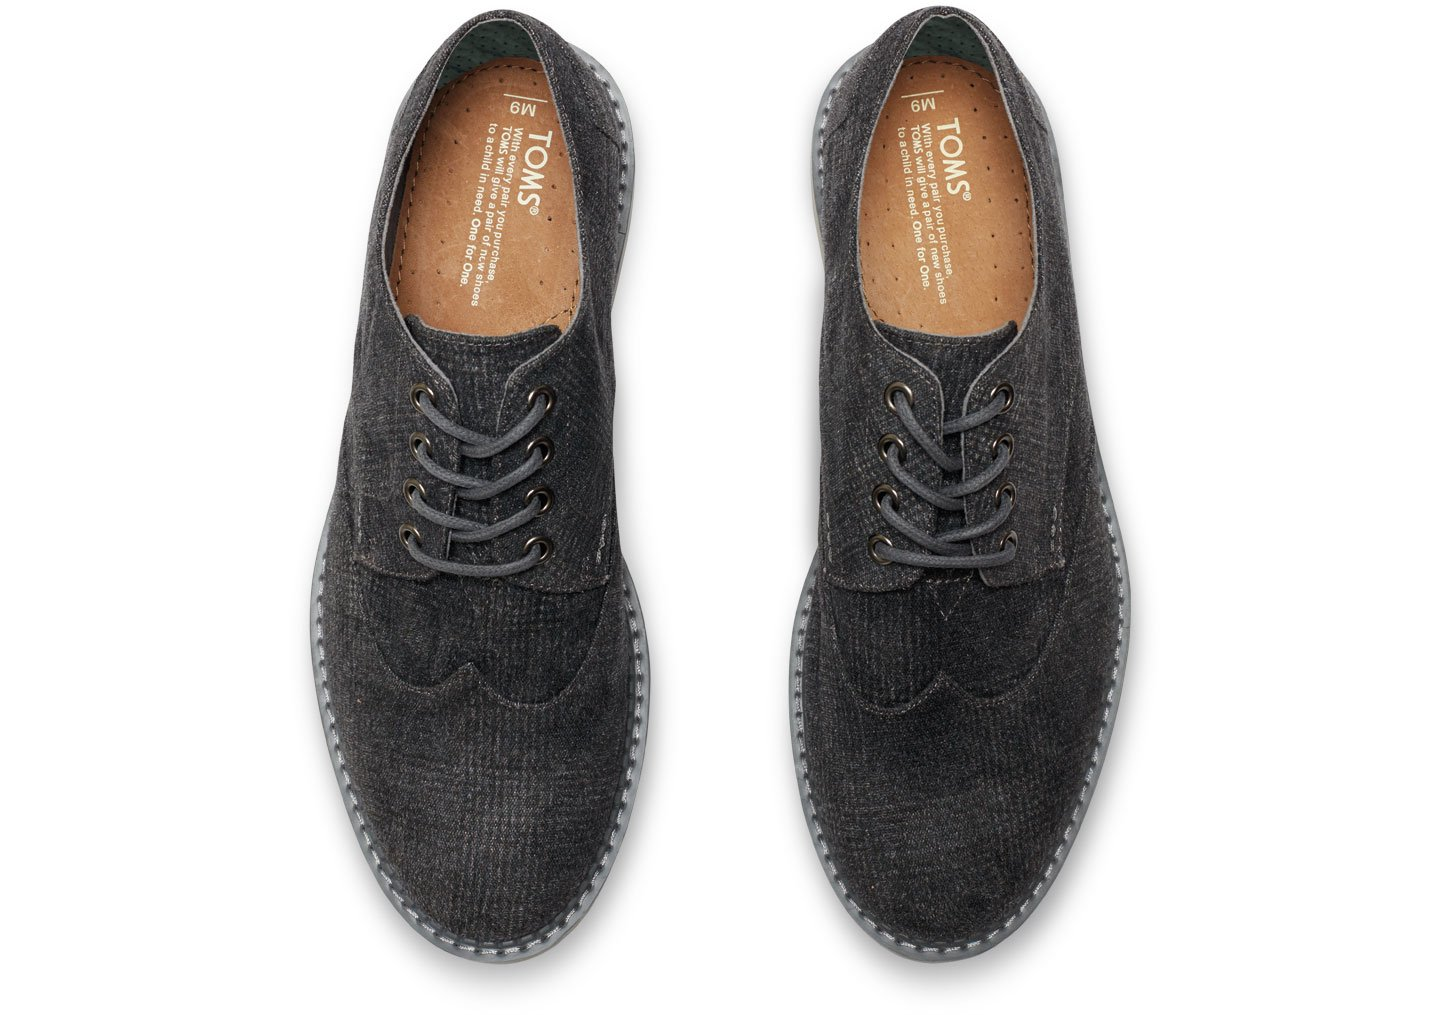 ae3f8c4bcdc Lyst - TOMS Castlerock Grey Plaid Men s Brogues in Gray for Men